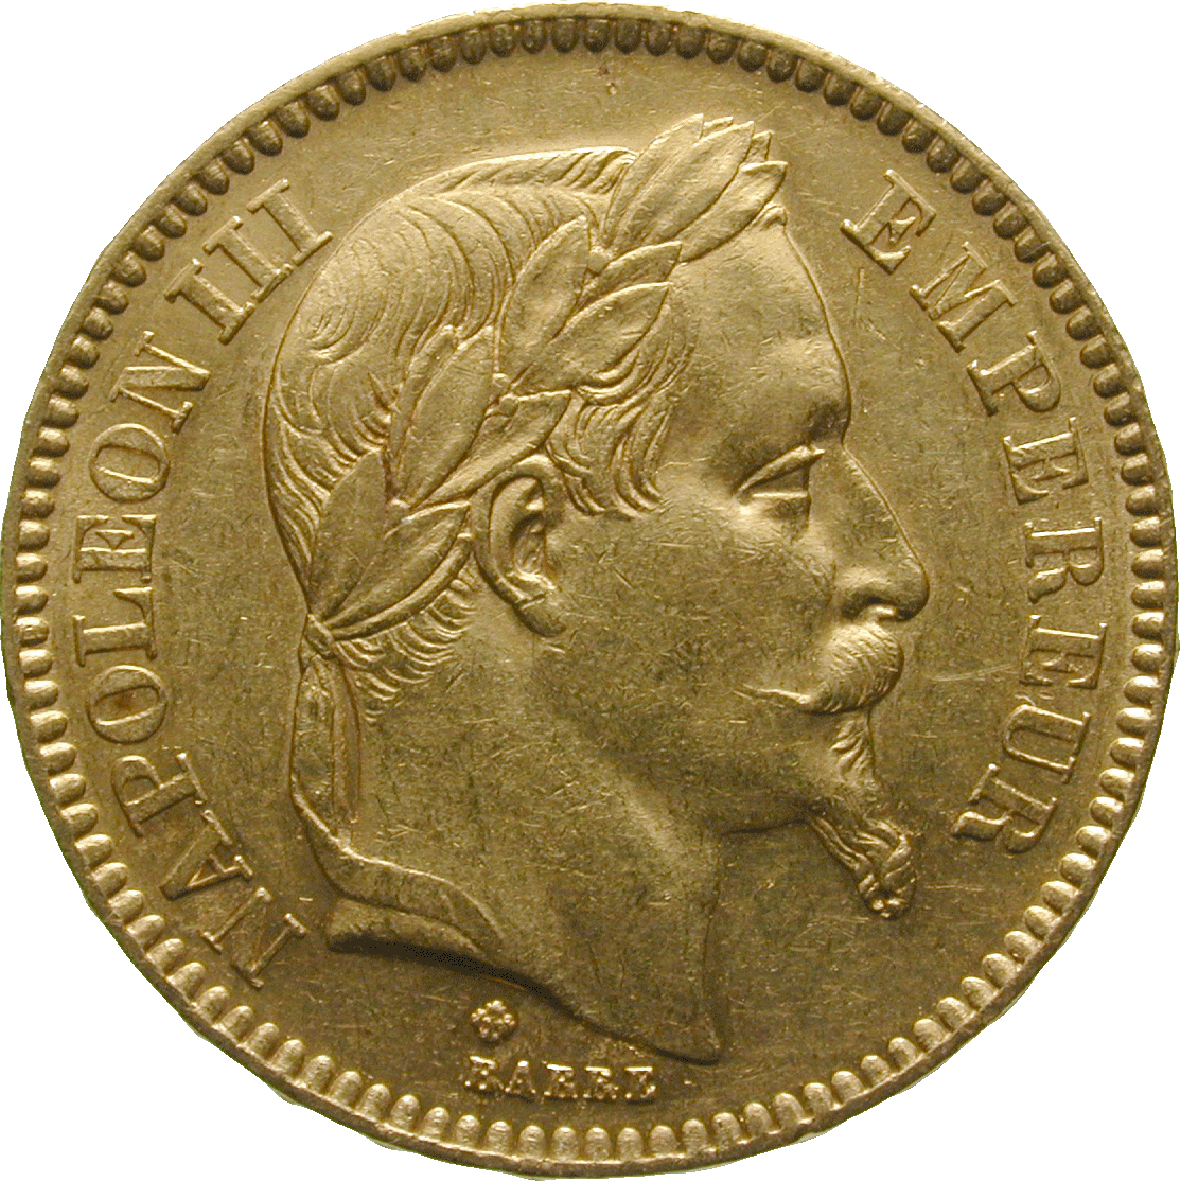 French Empire, Napoleon III, 20 Francs 1865 (obverse)